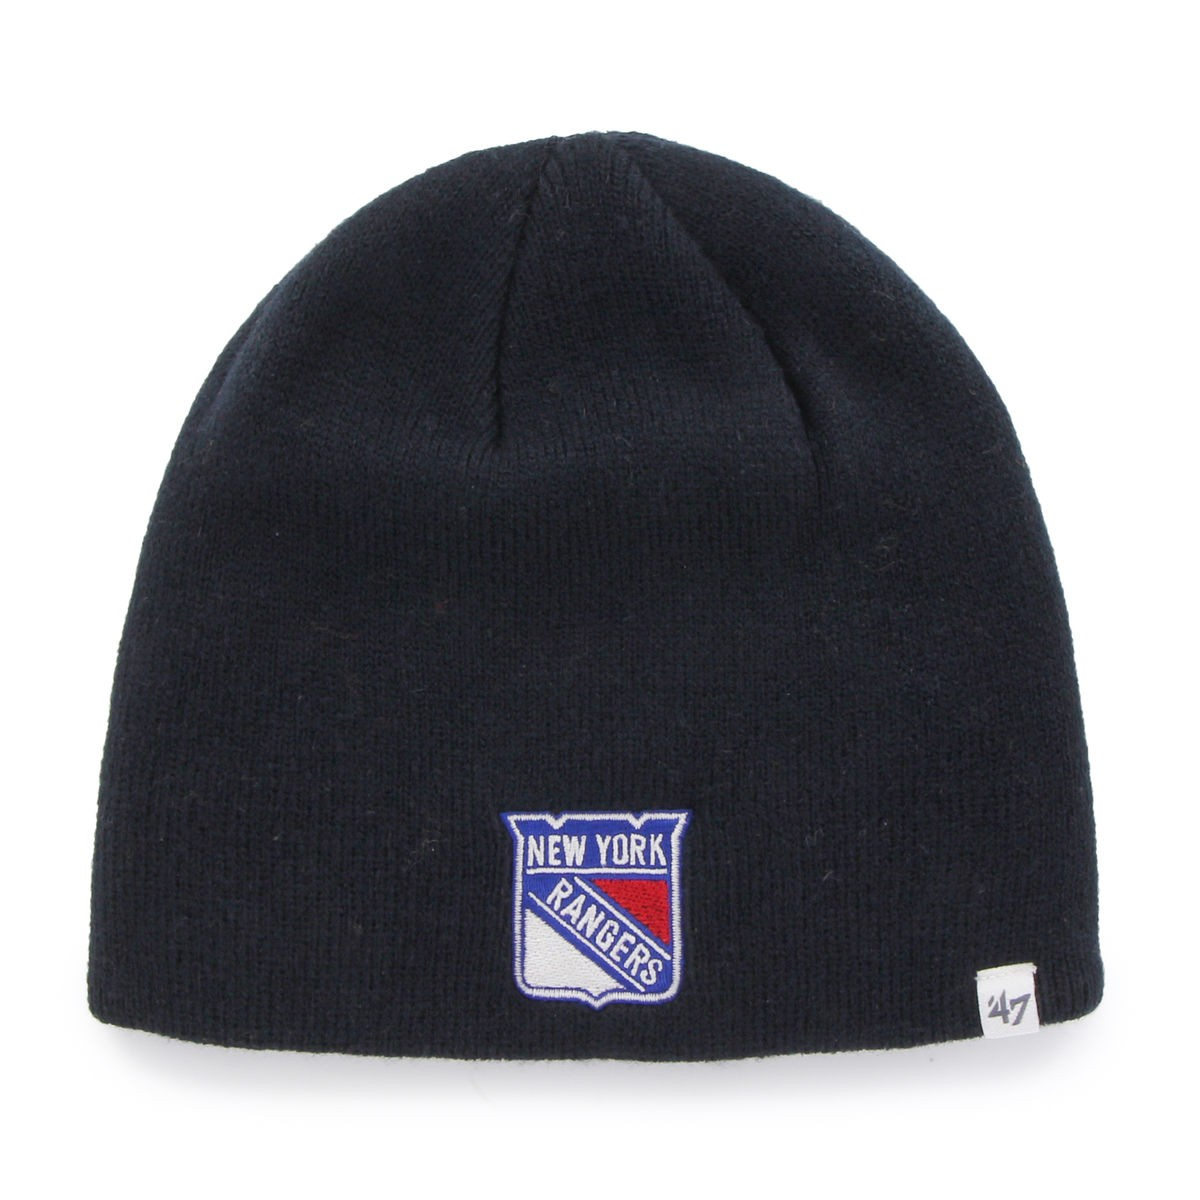 BRAND 47 New York Rangers Beanie Winter Hat